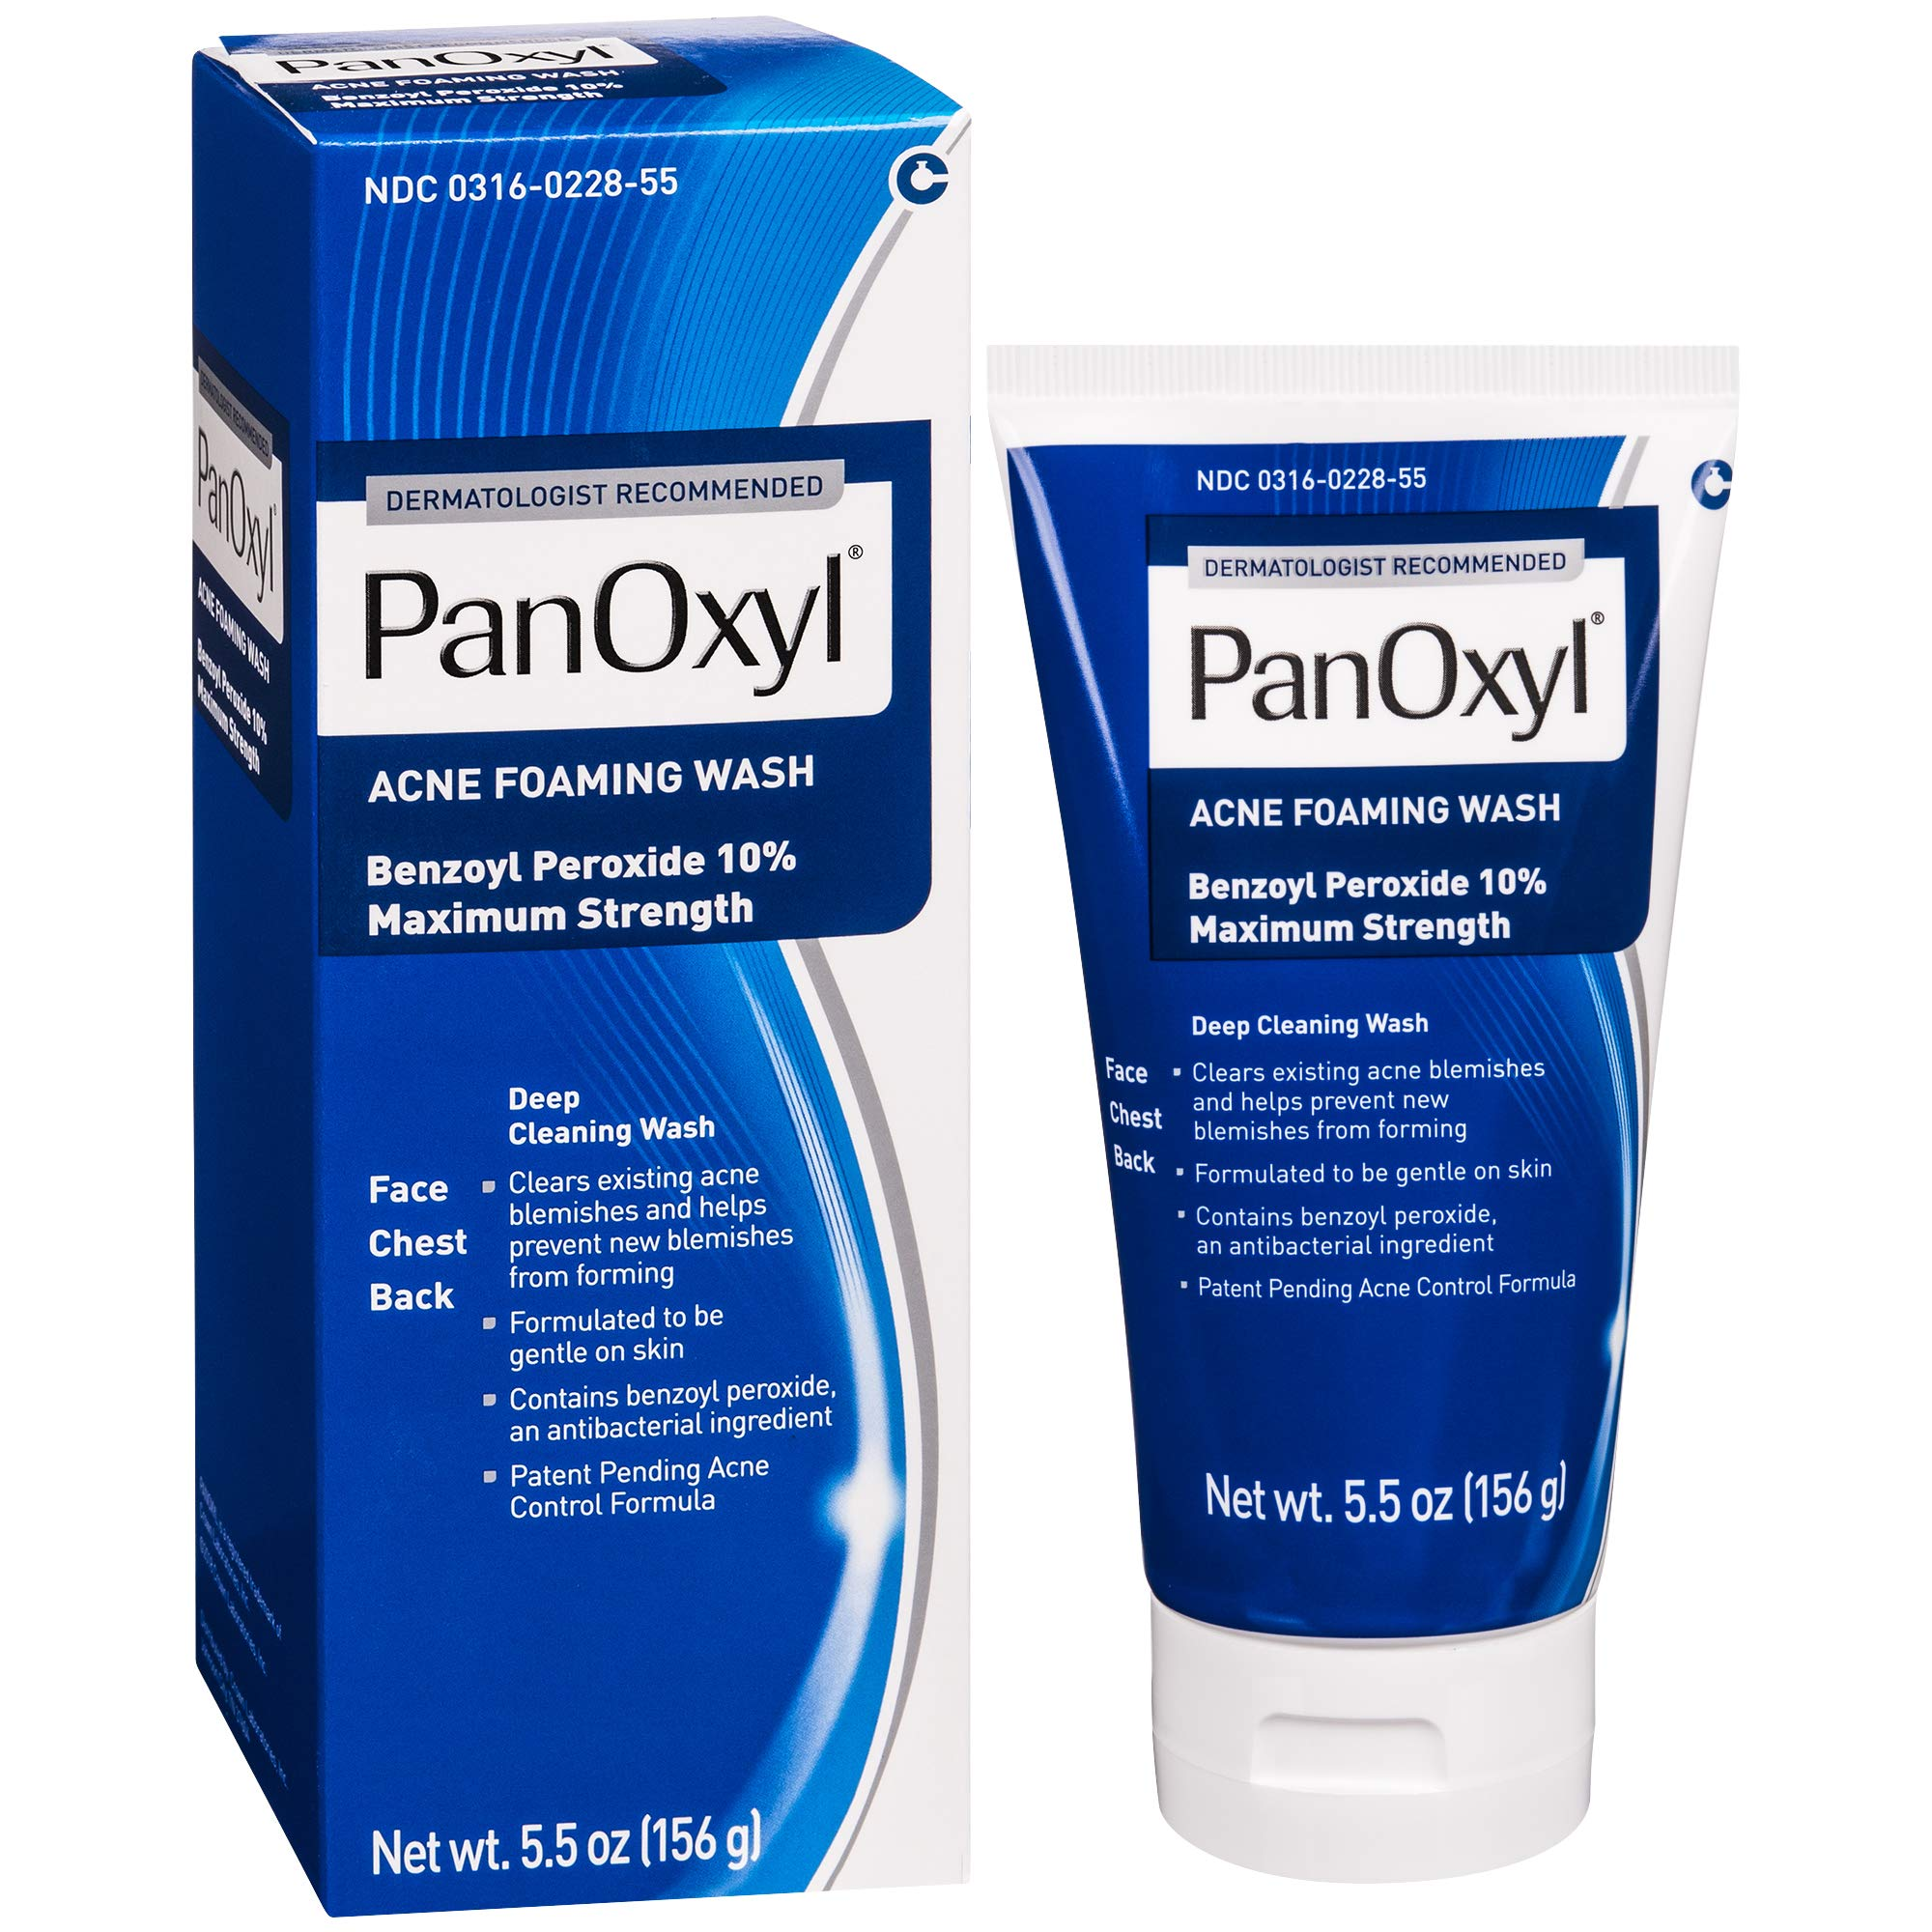 PanOxyl Acne Foaming Wash Benzoyl Peroxide 10% Maximum Strength Antimicrobial, 5.5 Ounce